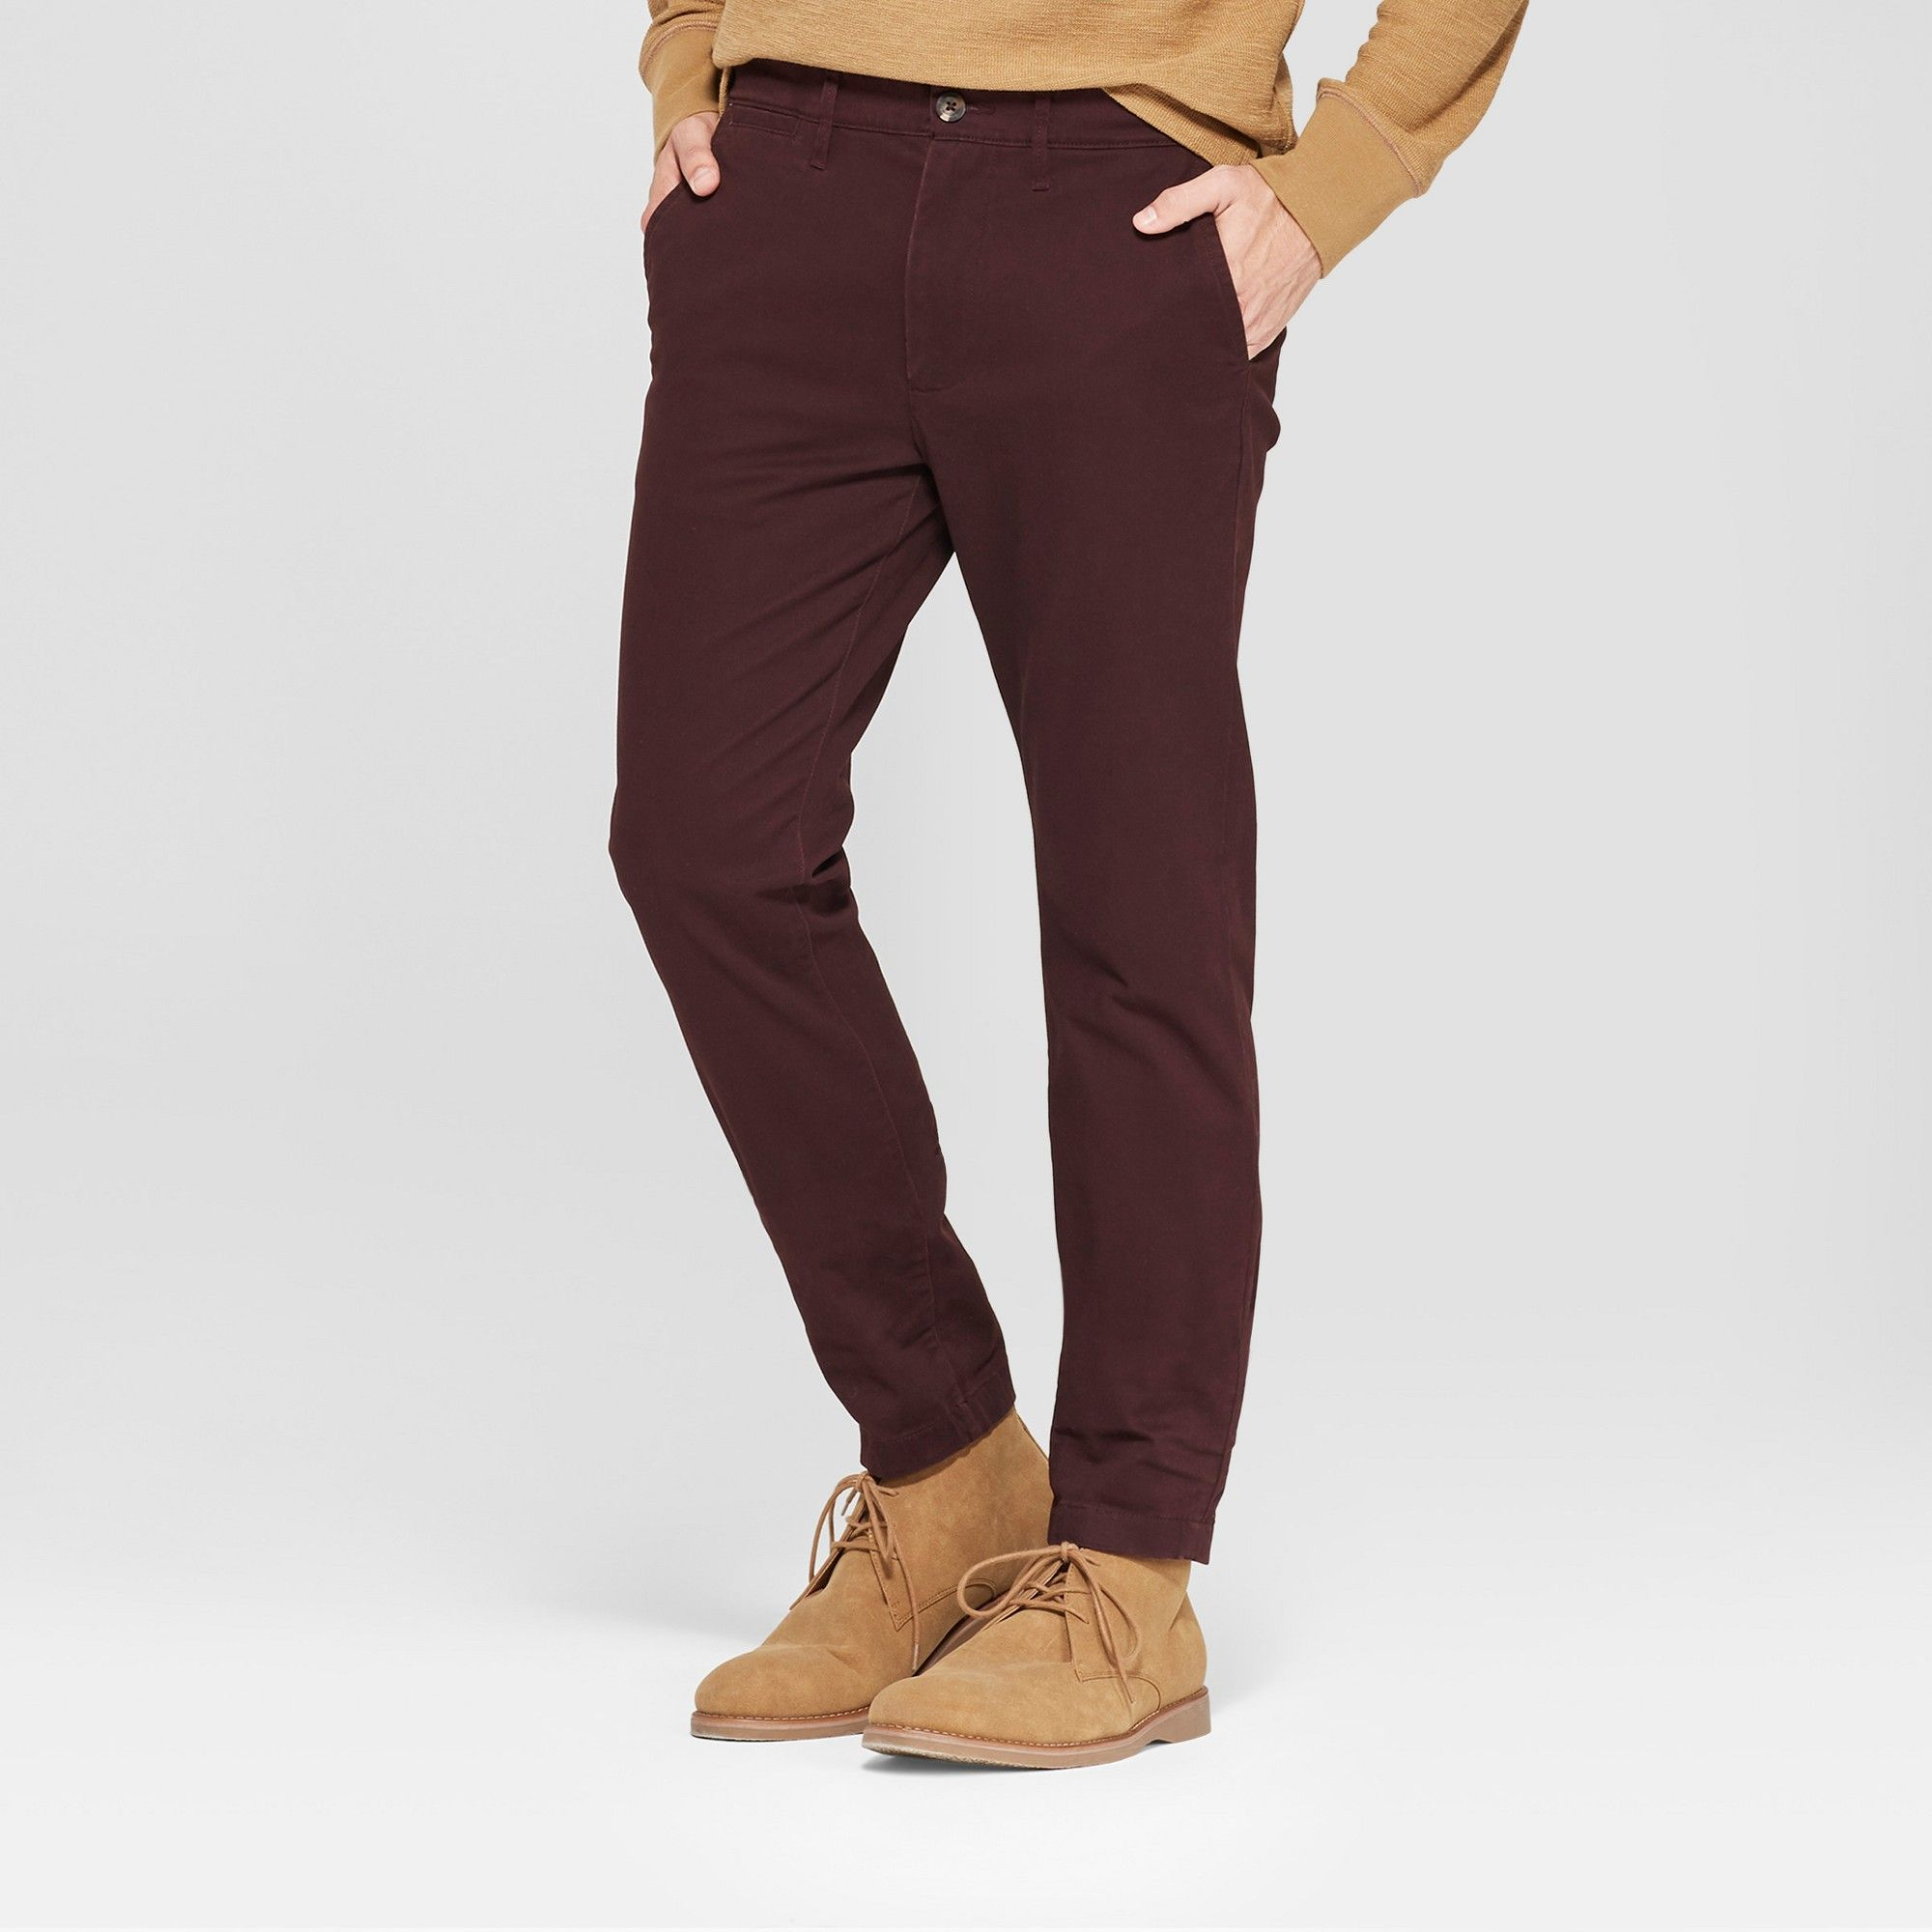 BRAND NEW MULTIPLE SIZES GOODFELLOW CHINO SLIM FIT PANTS Stretch 6 Colors